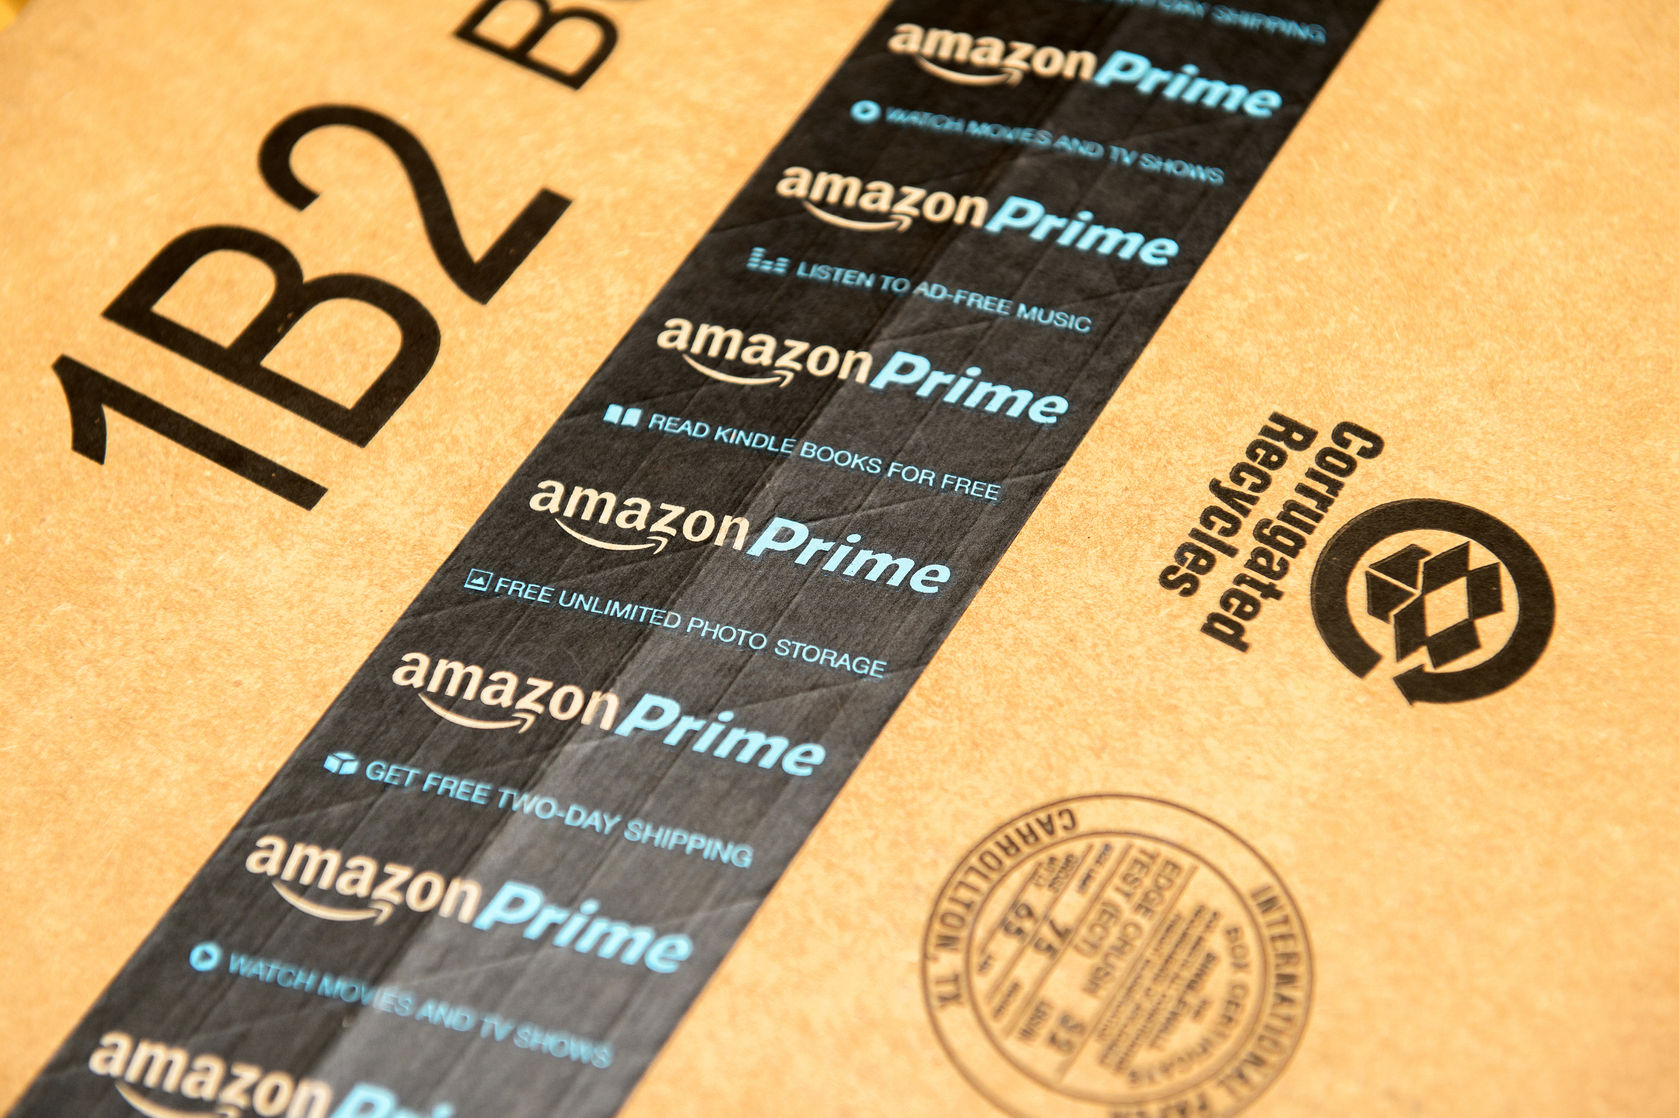 Box Label: Sprint Customers Now Can Get 60 Days Of Amazon Prime For Free